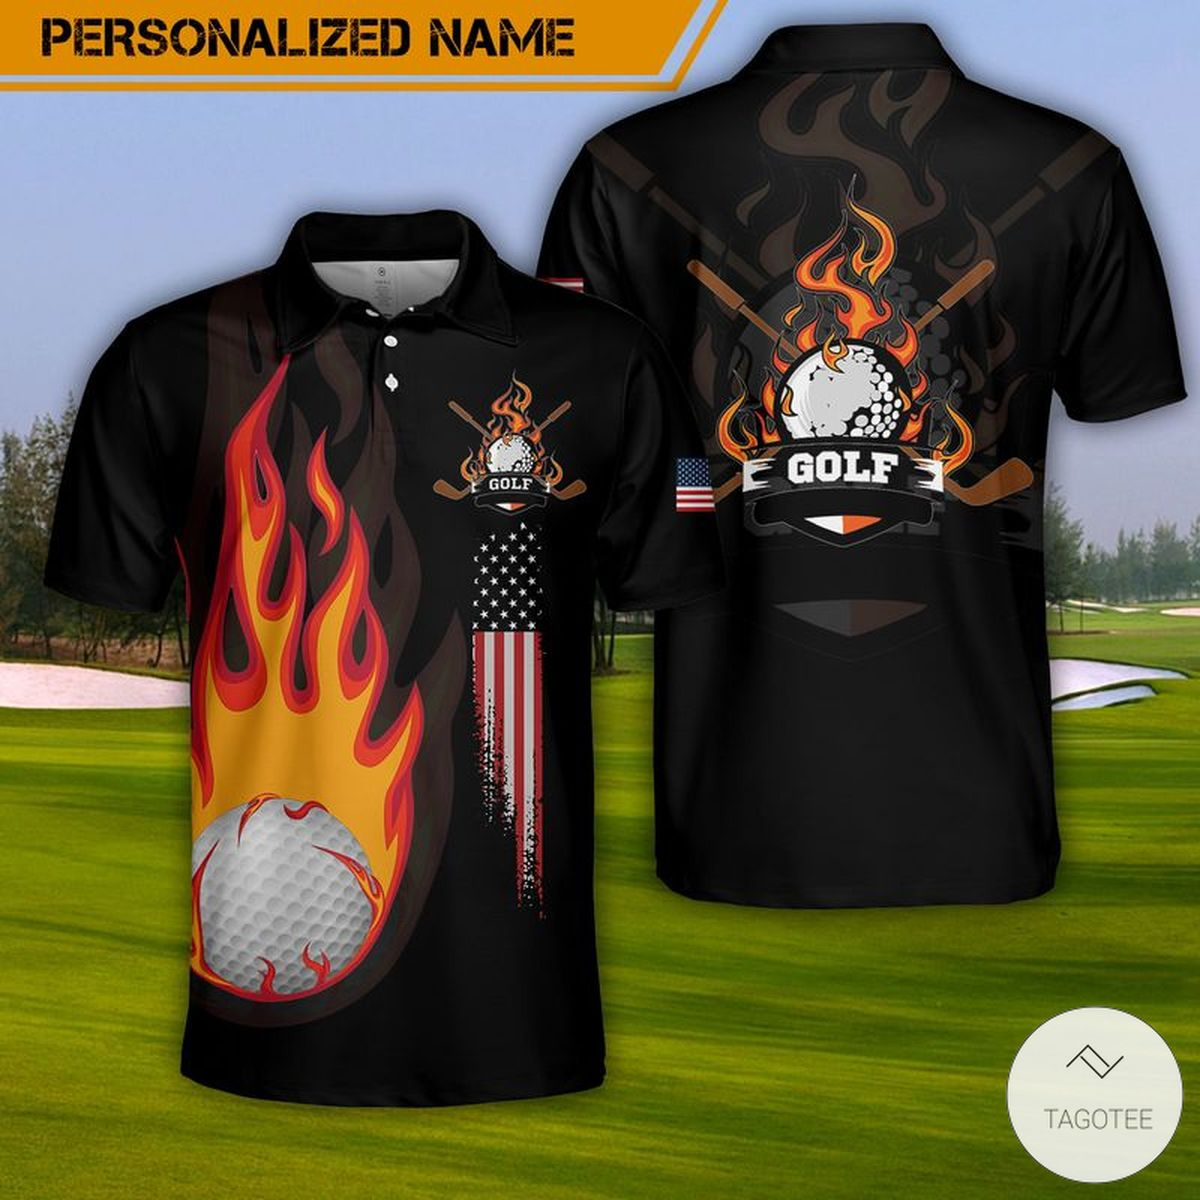 Personalized Golf Fire Polo Shirt